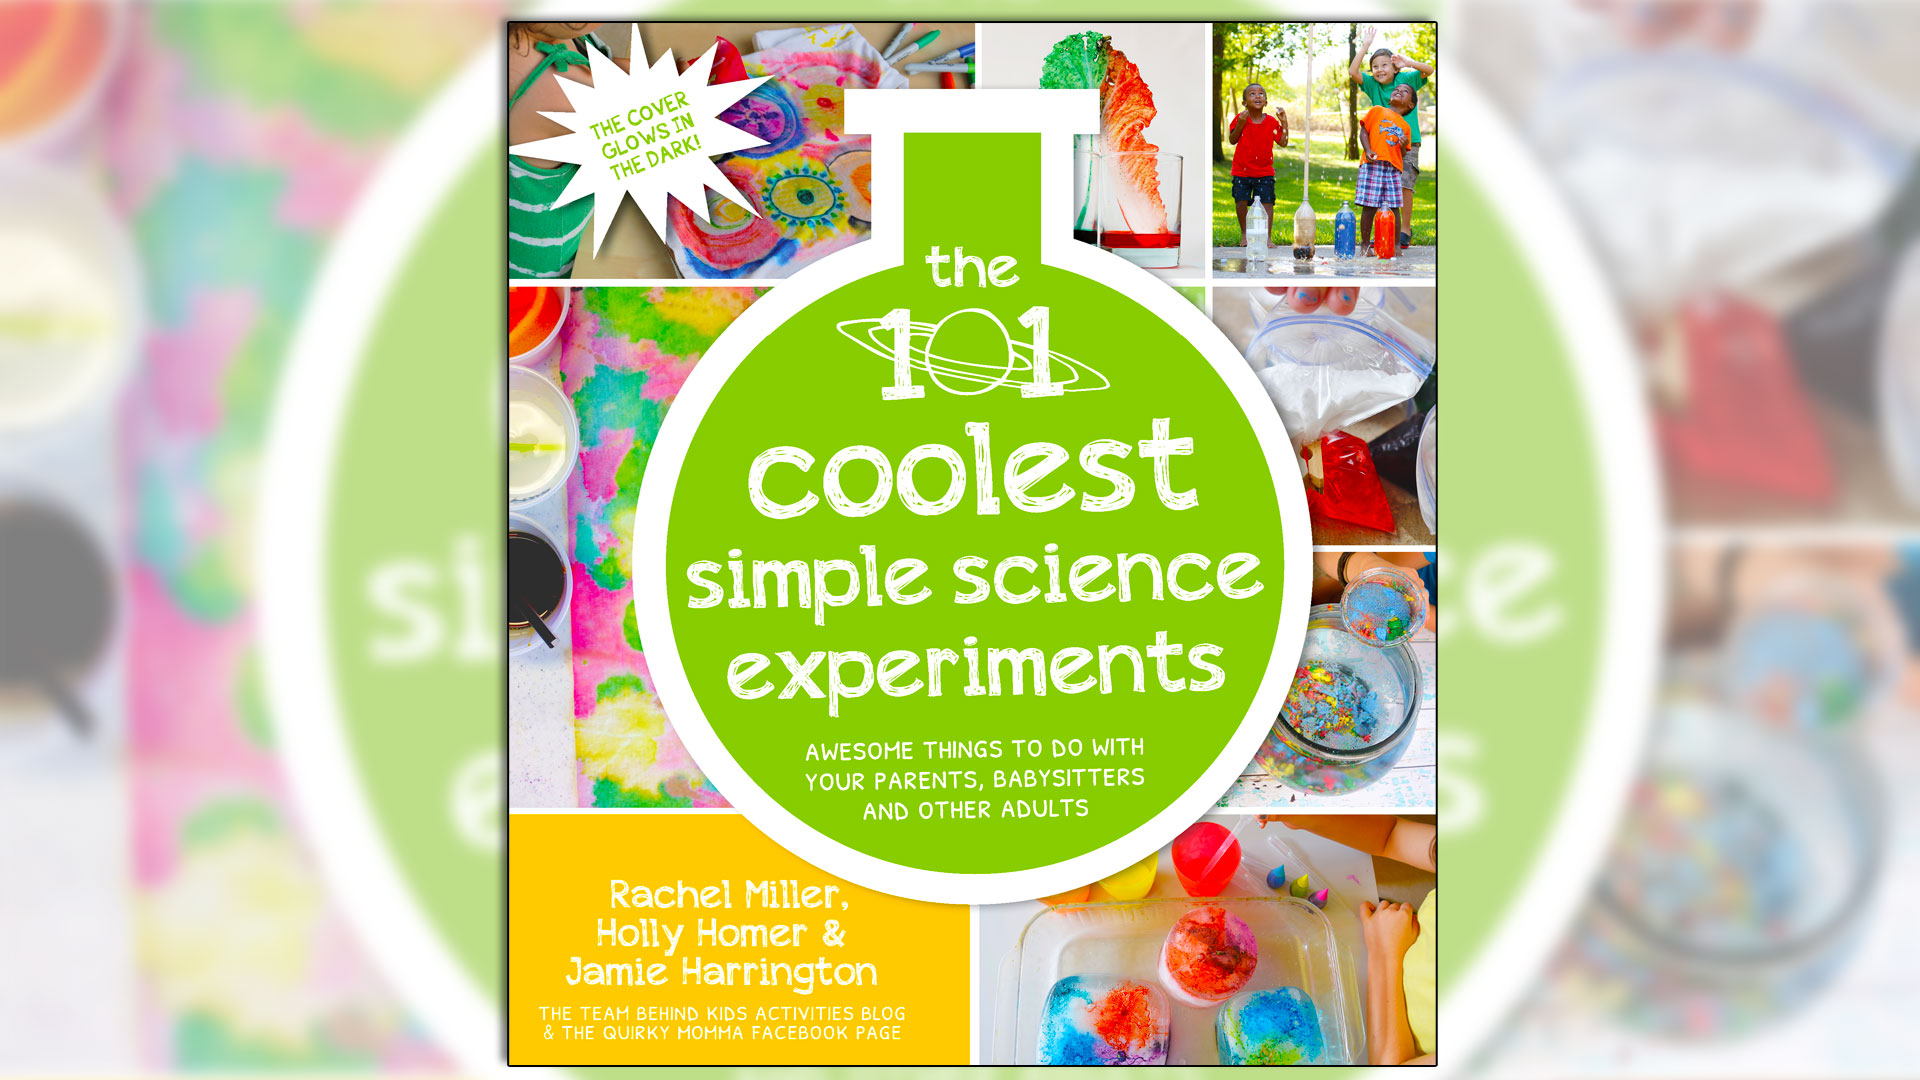 101 Coolest Science experiments for Kids